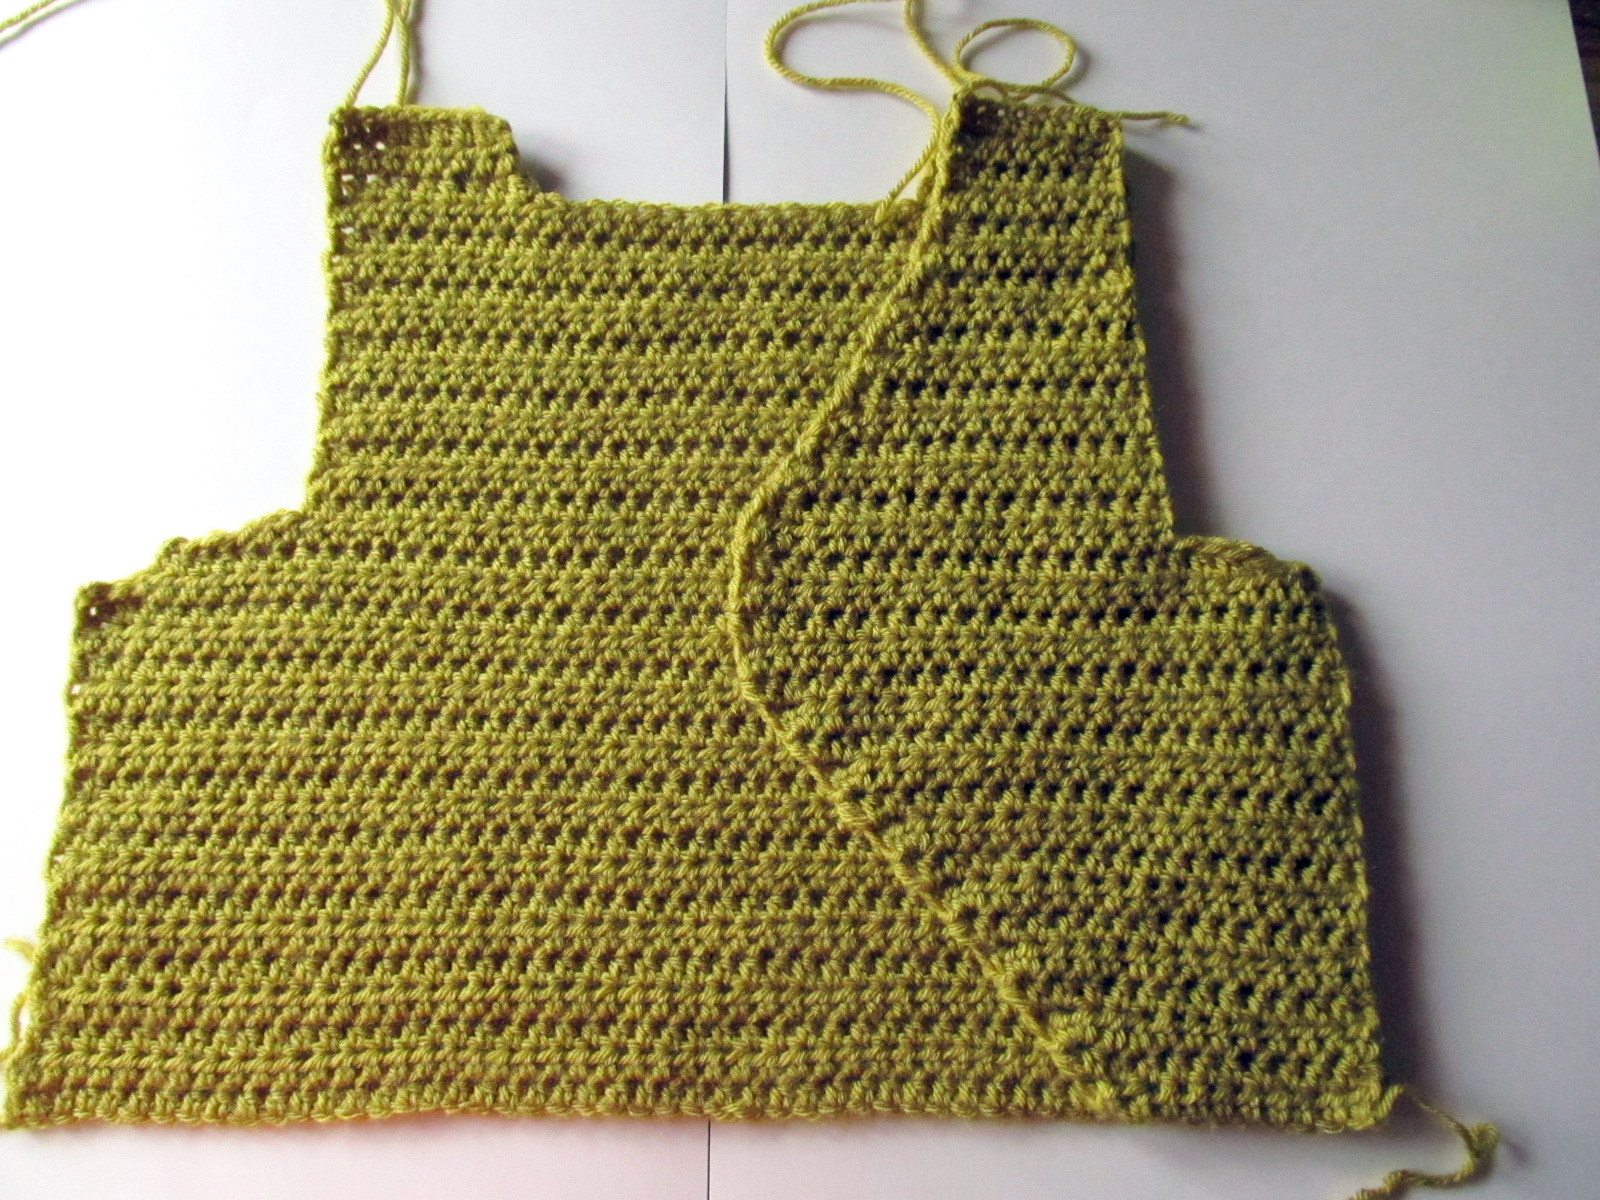 It's A Basic Crochet Vest Or Cropped Bolero Style With Instructions For A  Simple Crochet Edging Or A Ribbed Edging Sizes Are For Small Through Extra  Large